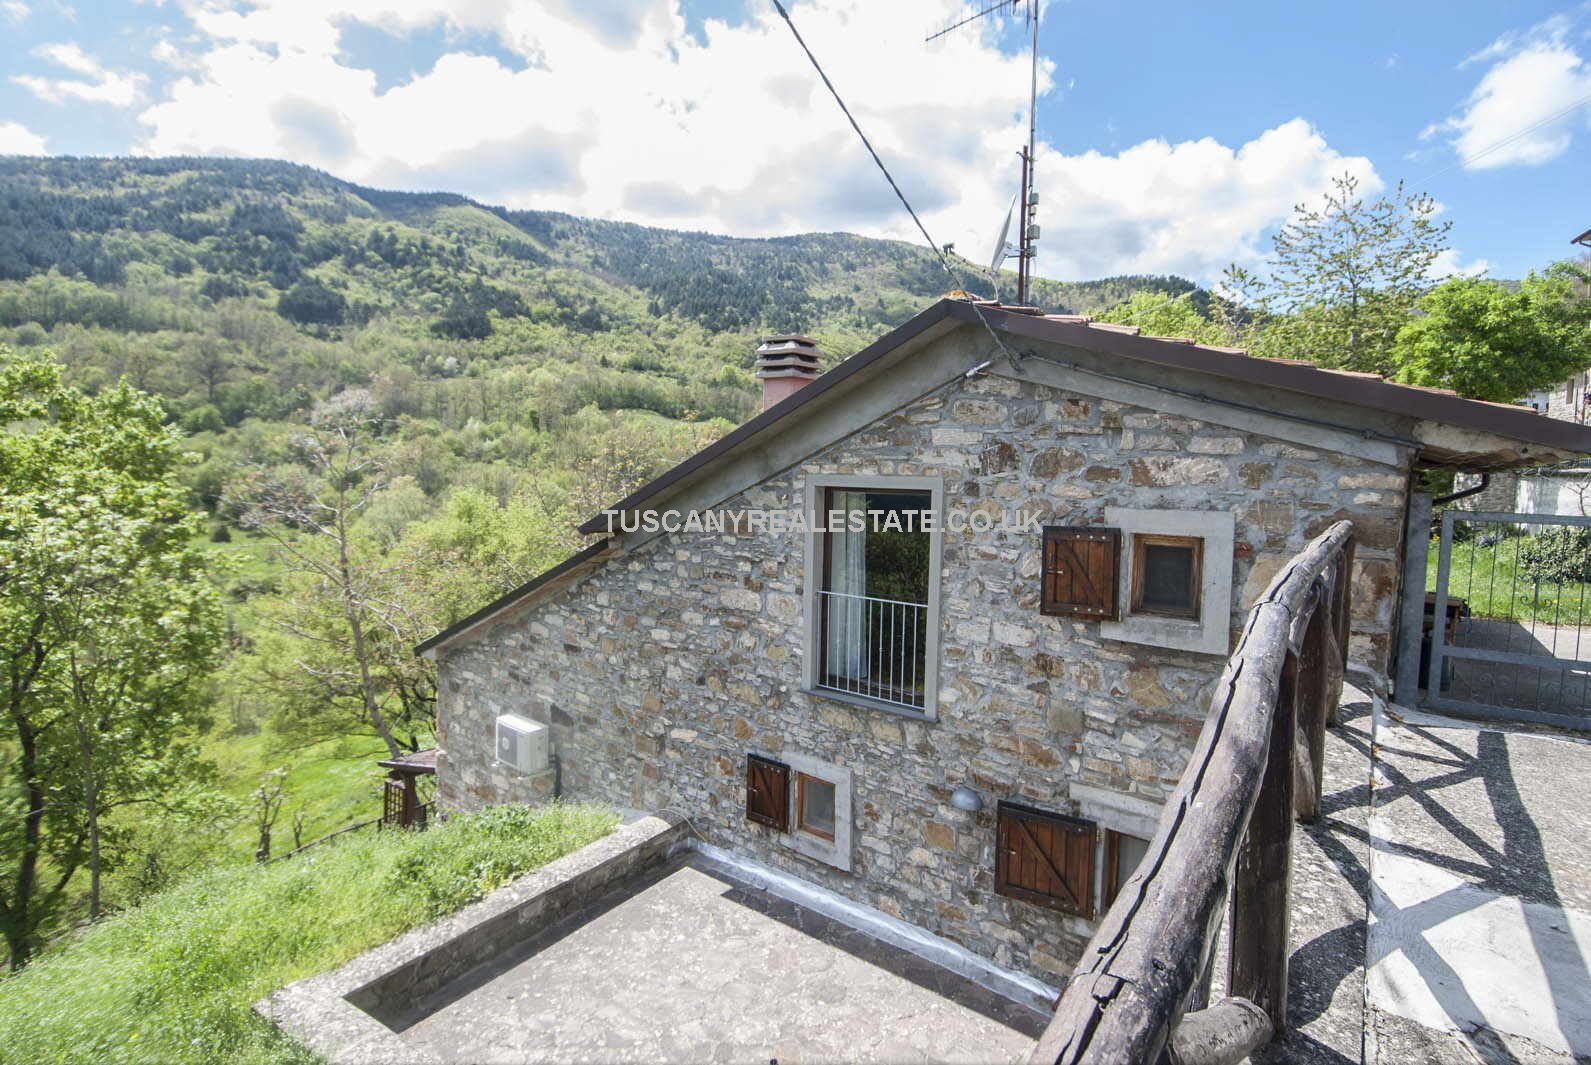 cheap house for sale in italy tuscany tuscany real estate